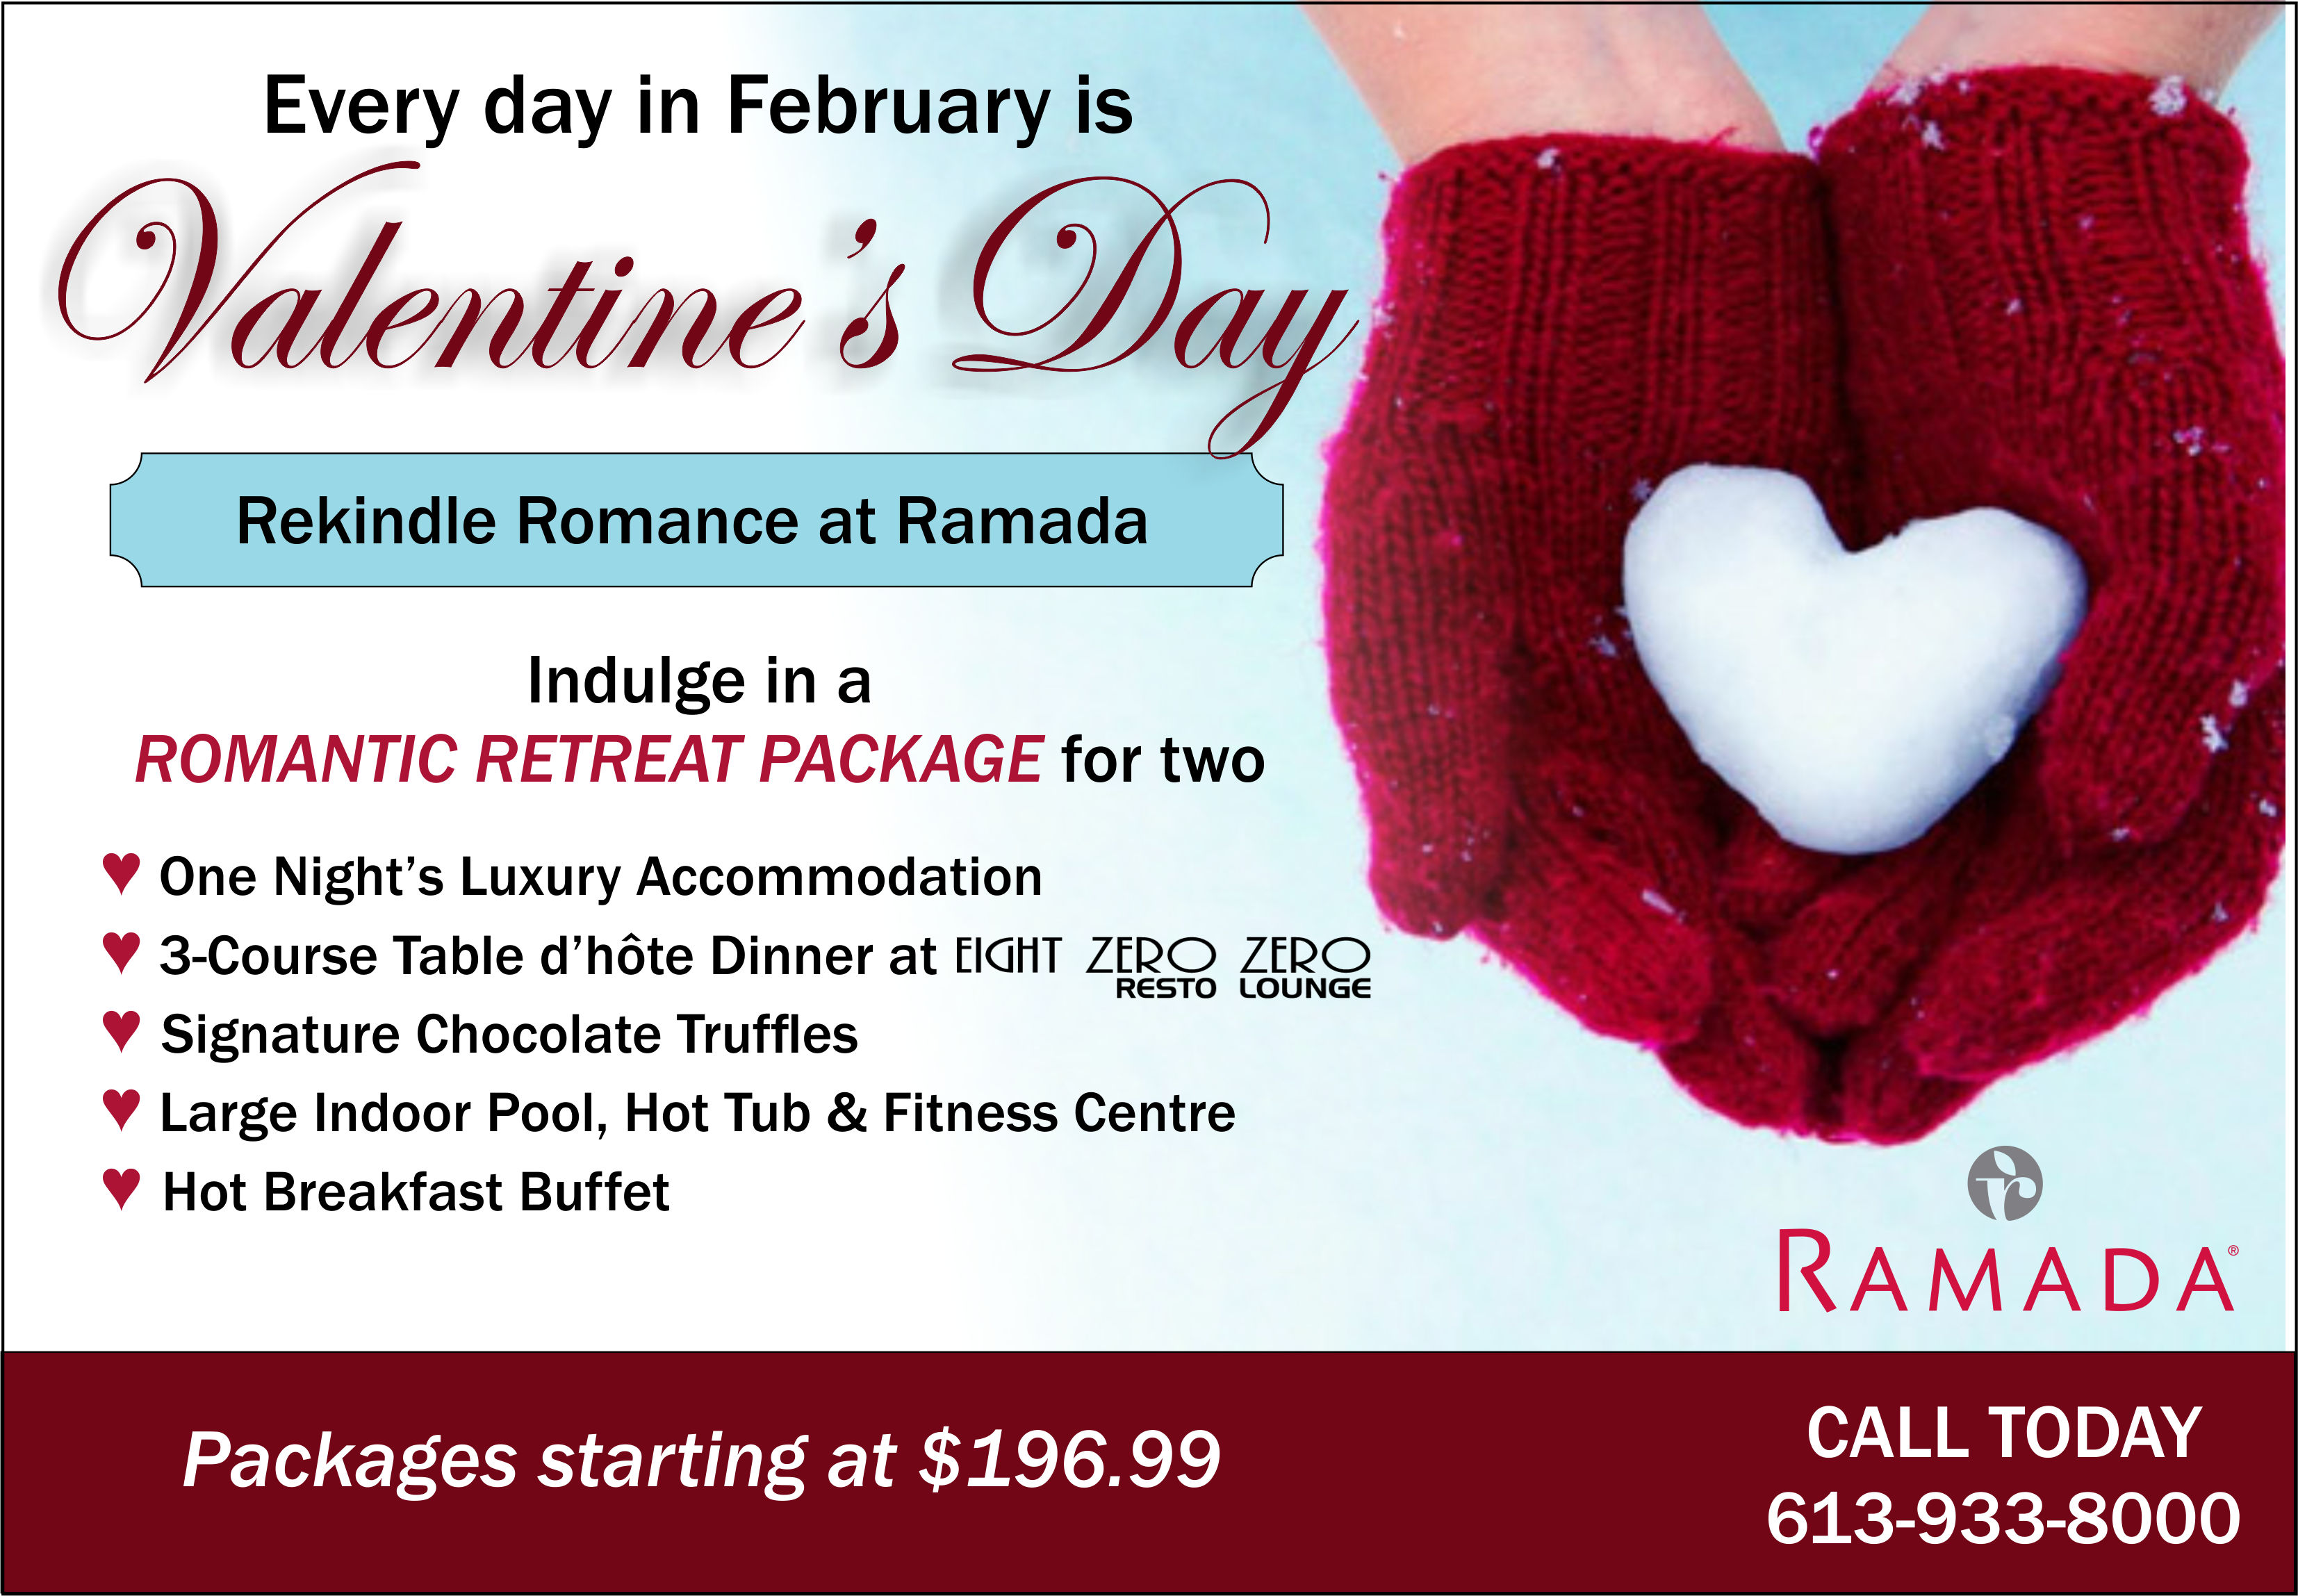 Romantic Retreat Package